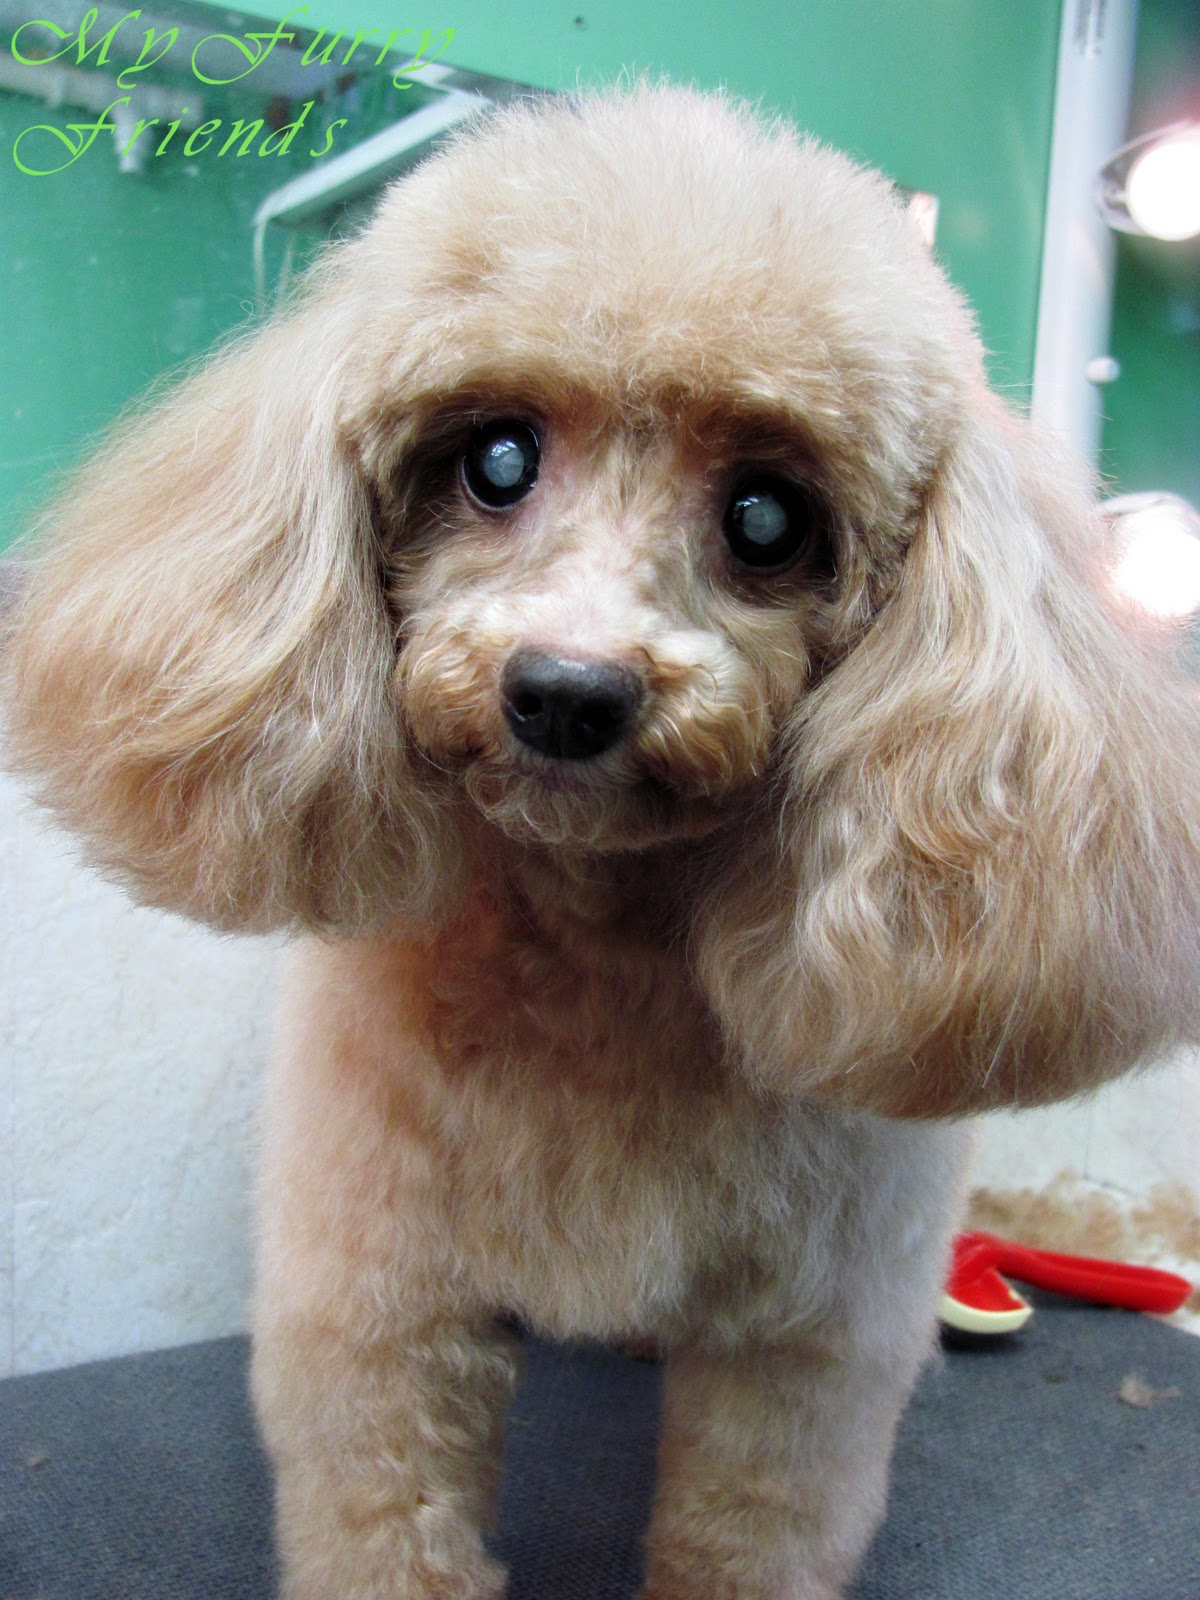 Grooming Your Furry Friend: Does A Poodle Have To Be ...